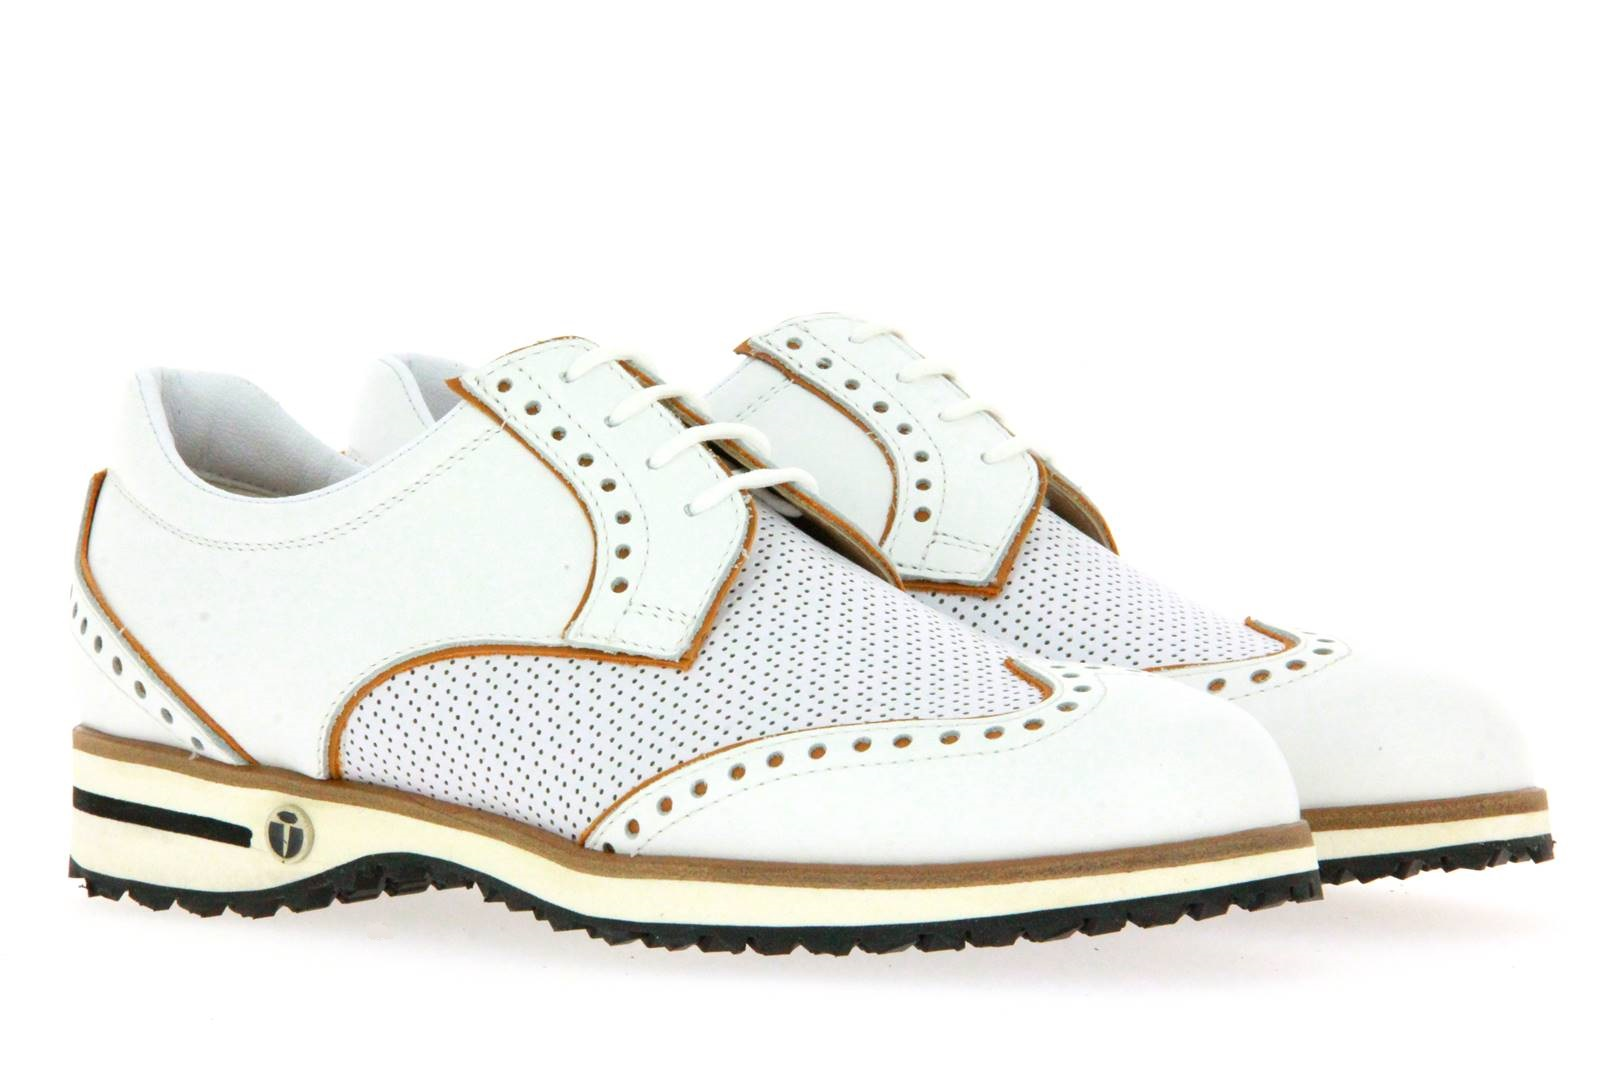 Tee Golf Shoes women's - golf shoes SALLY VITELLO GOLF BIANCO WP PAGLIA